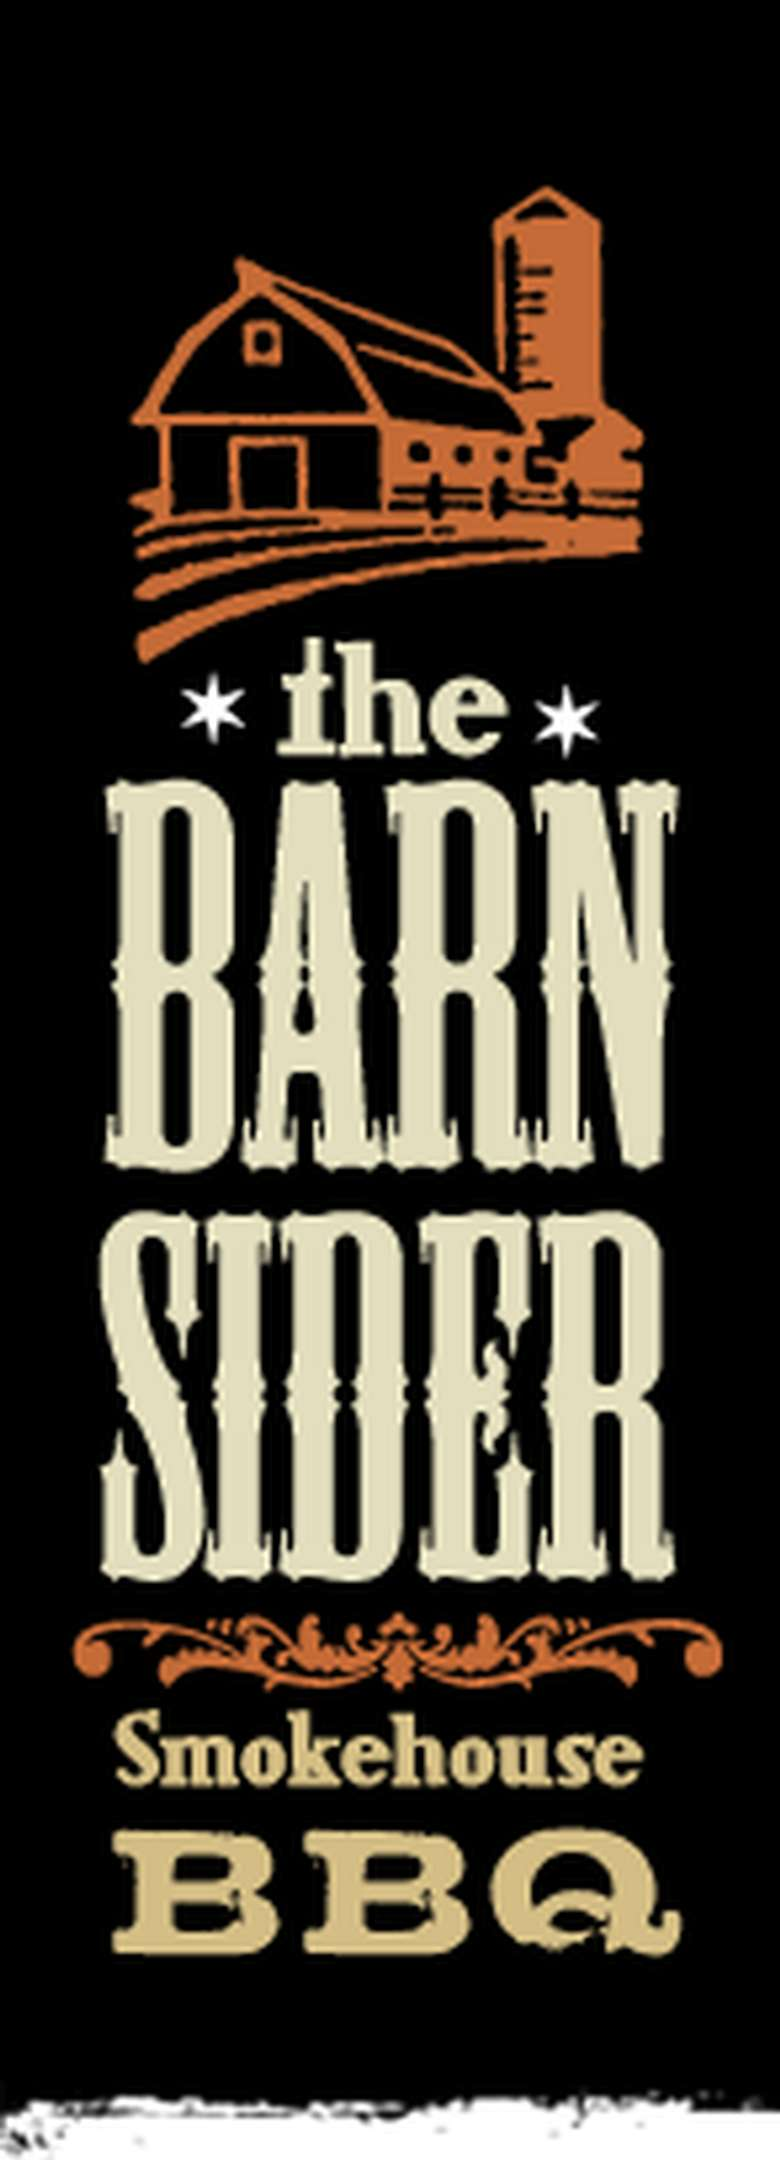 the barn sider logo